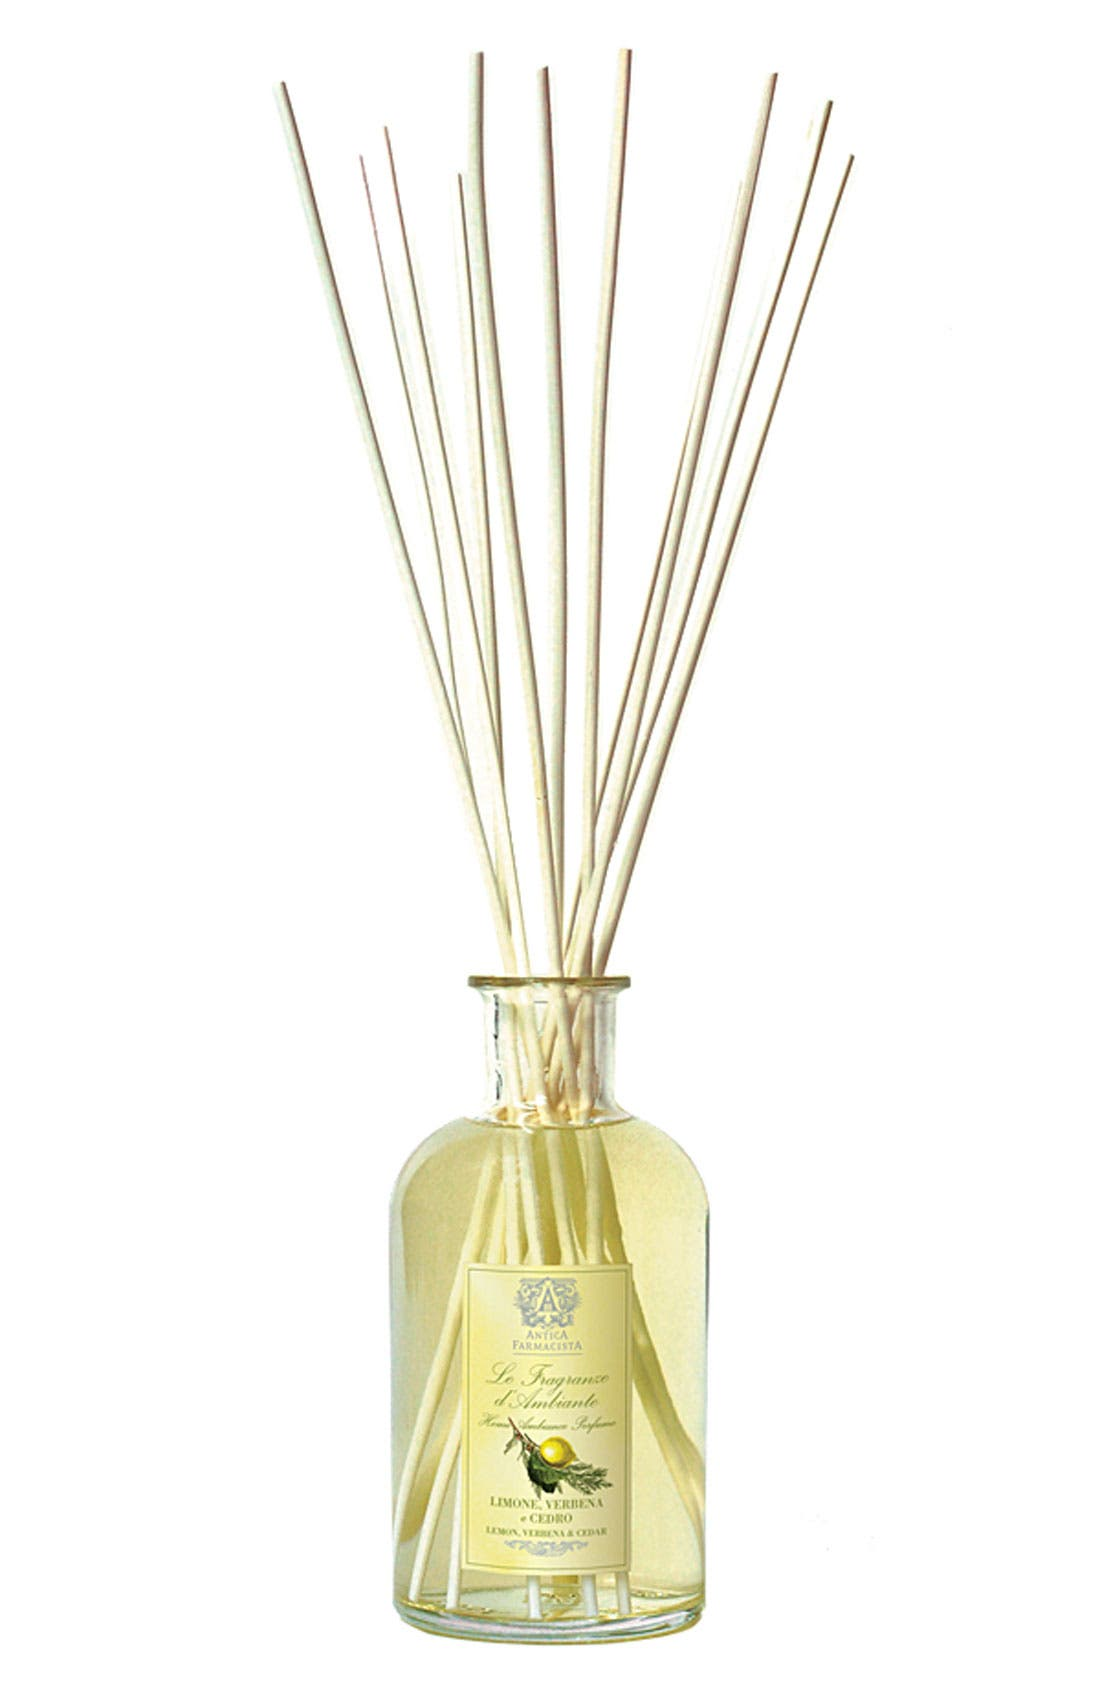 Alternate Image 1 Selected - Antica Farmacista Lemon, Verbena & Cedar Home Ambiance Perfume